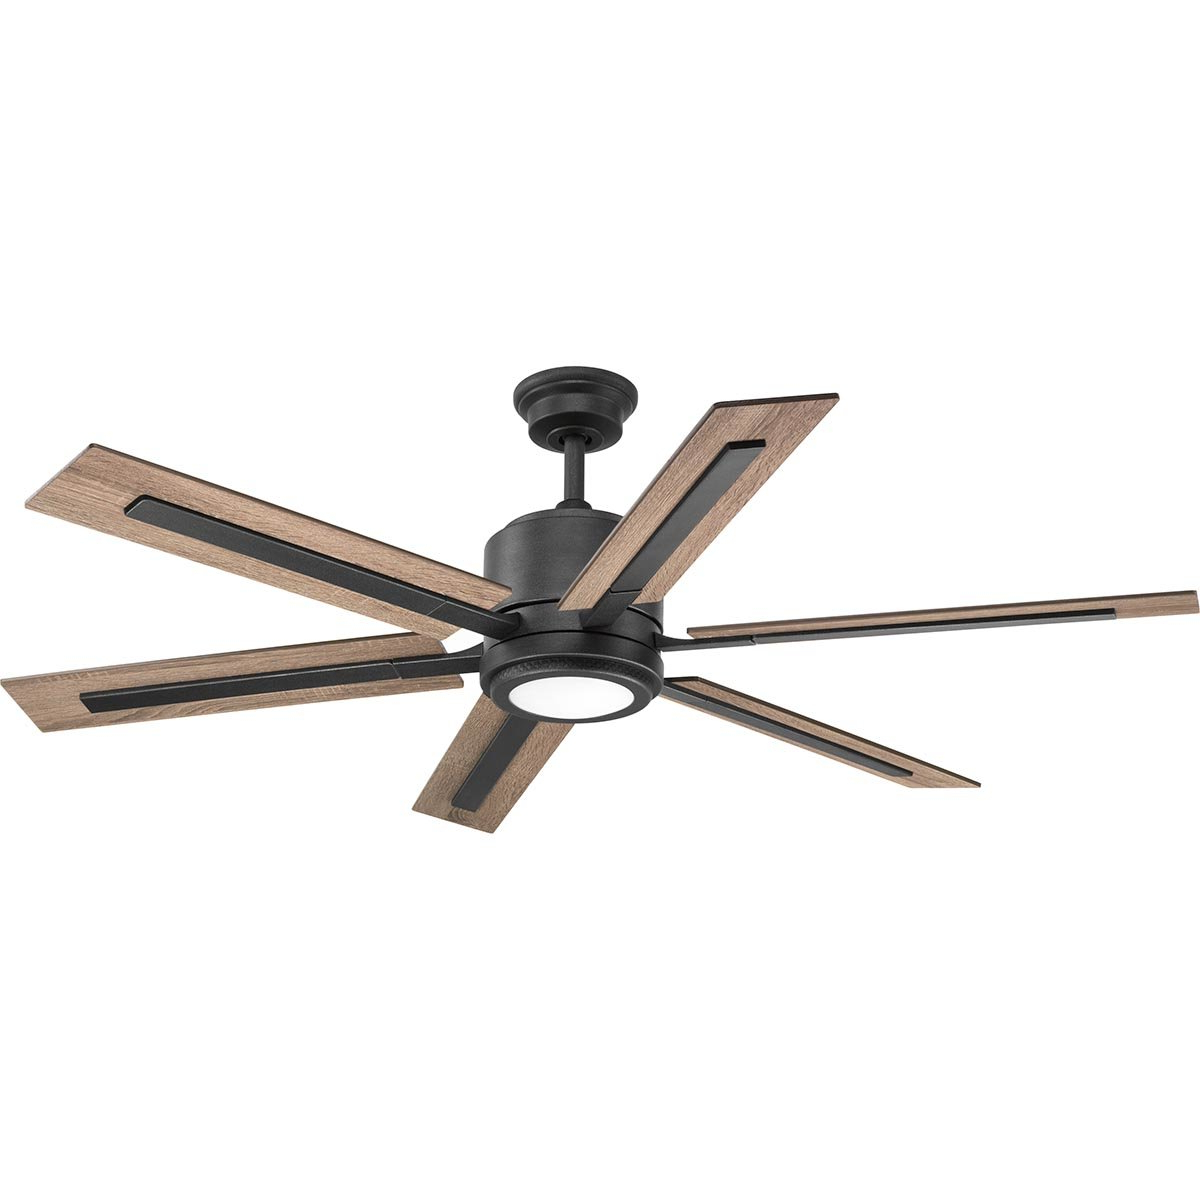 "Cillian 6 Blade Ceiling Fans Throughout Well Known 60"" Lesure 6 Blade Led Ceiling Fan With Remote, Light Kit Included (View 9 of 20)"